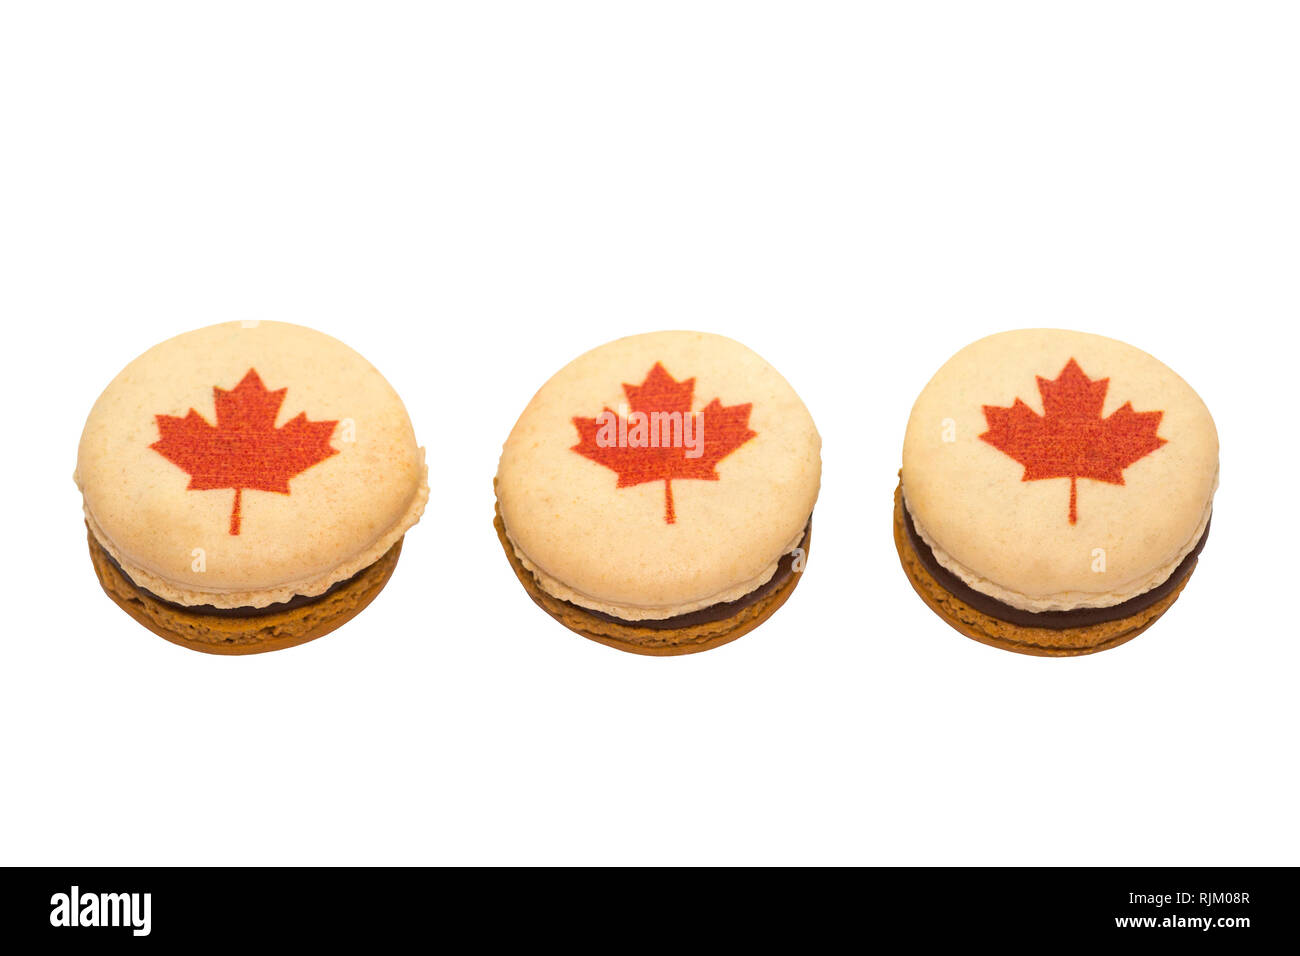 Macaron decorated with red maple leaves for Canada Day - Stock Image